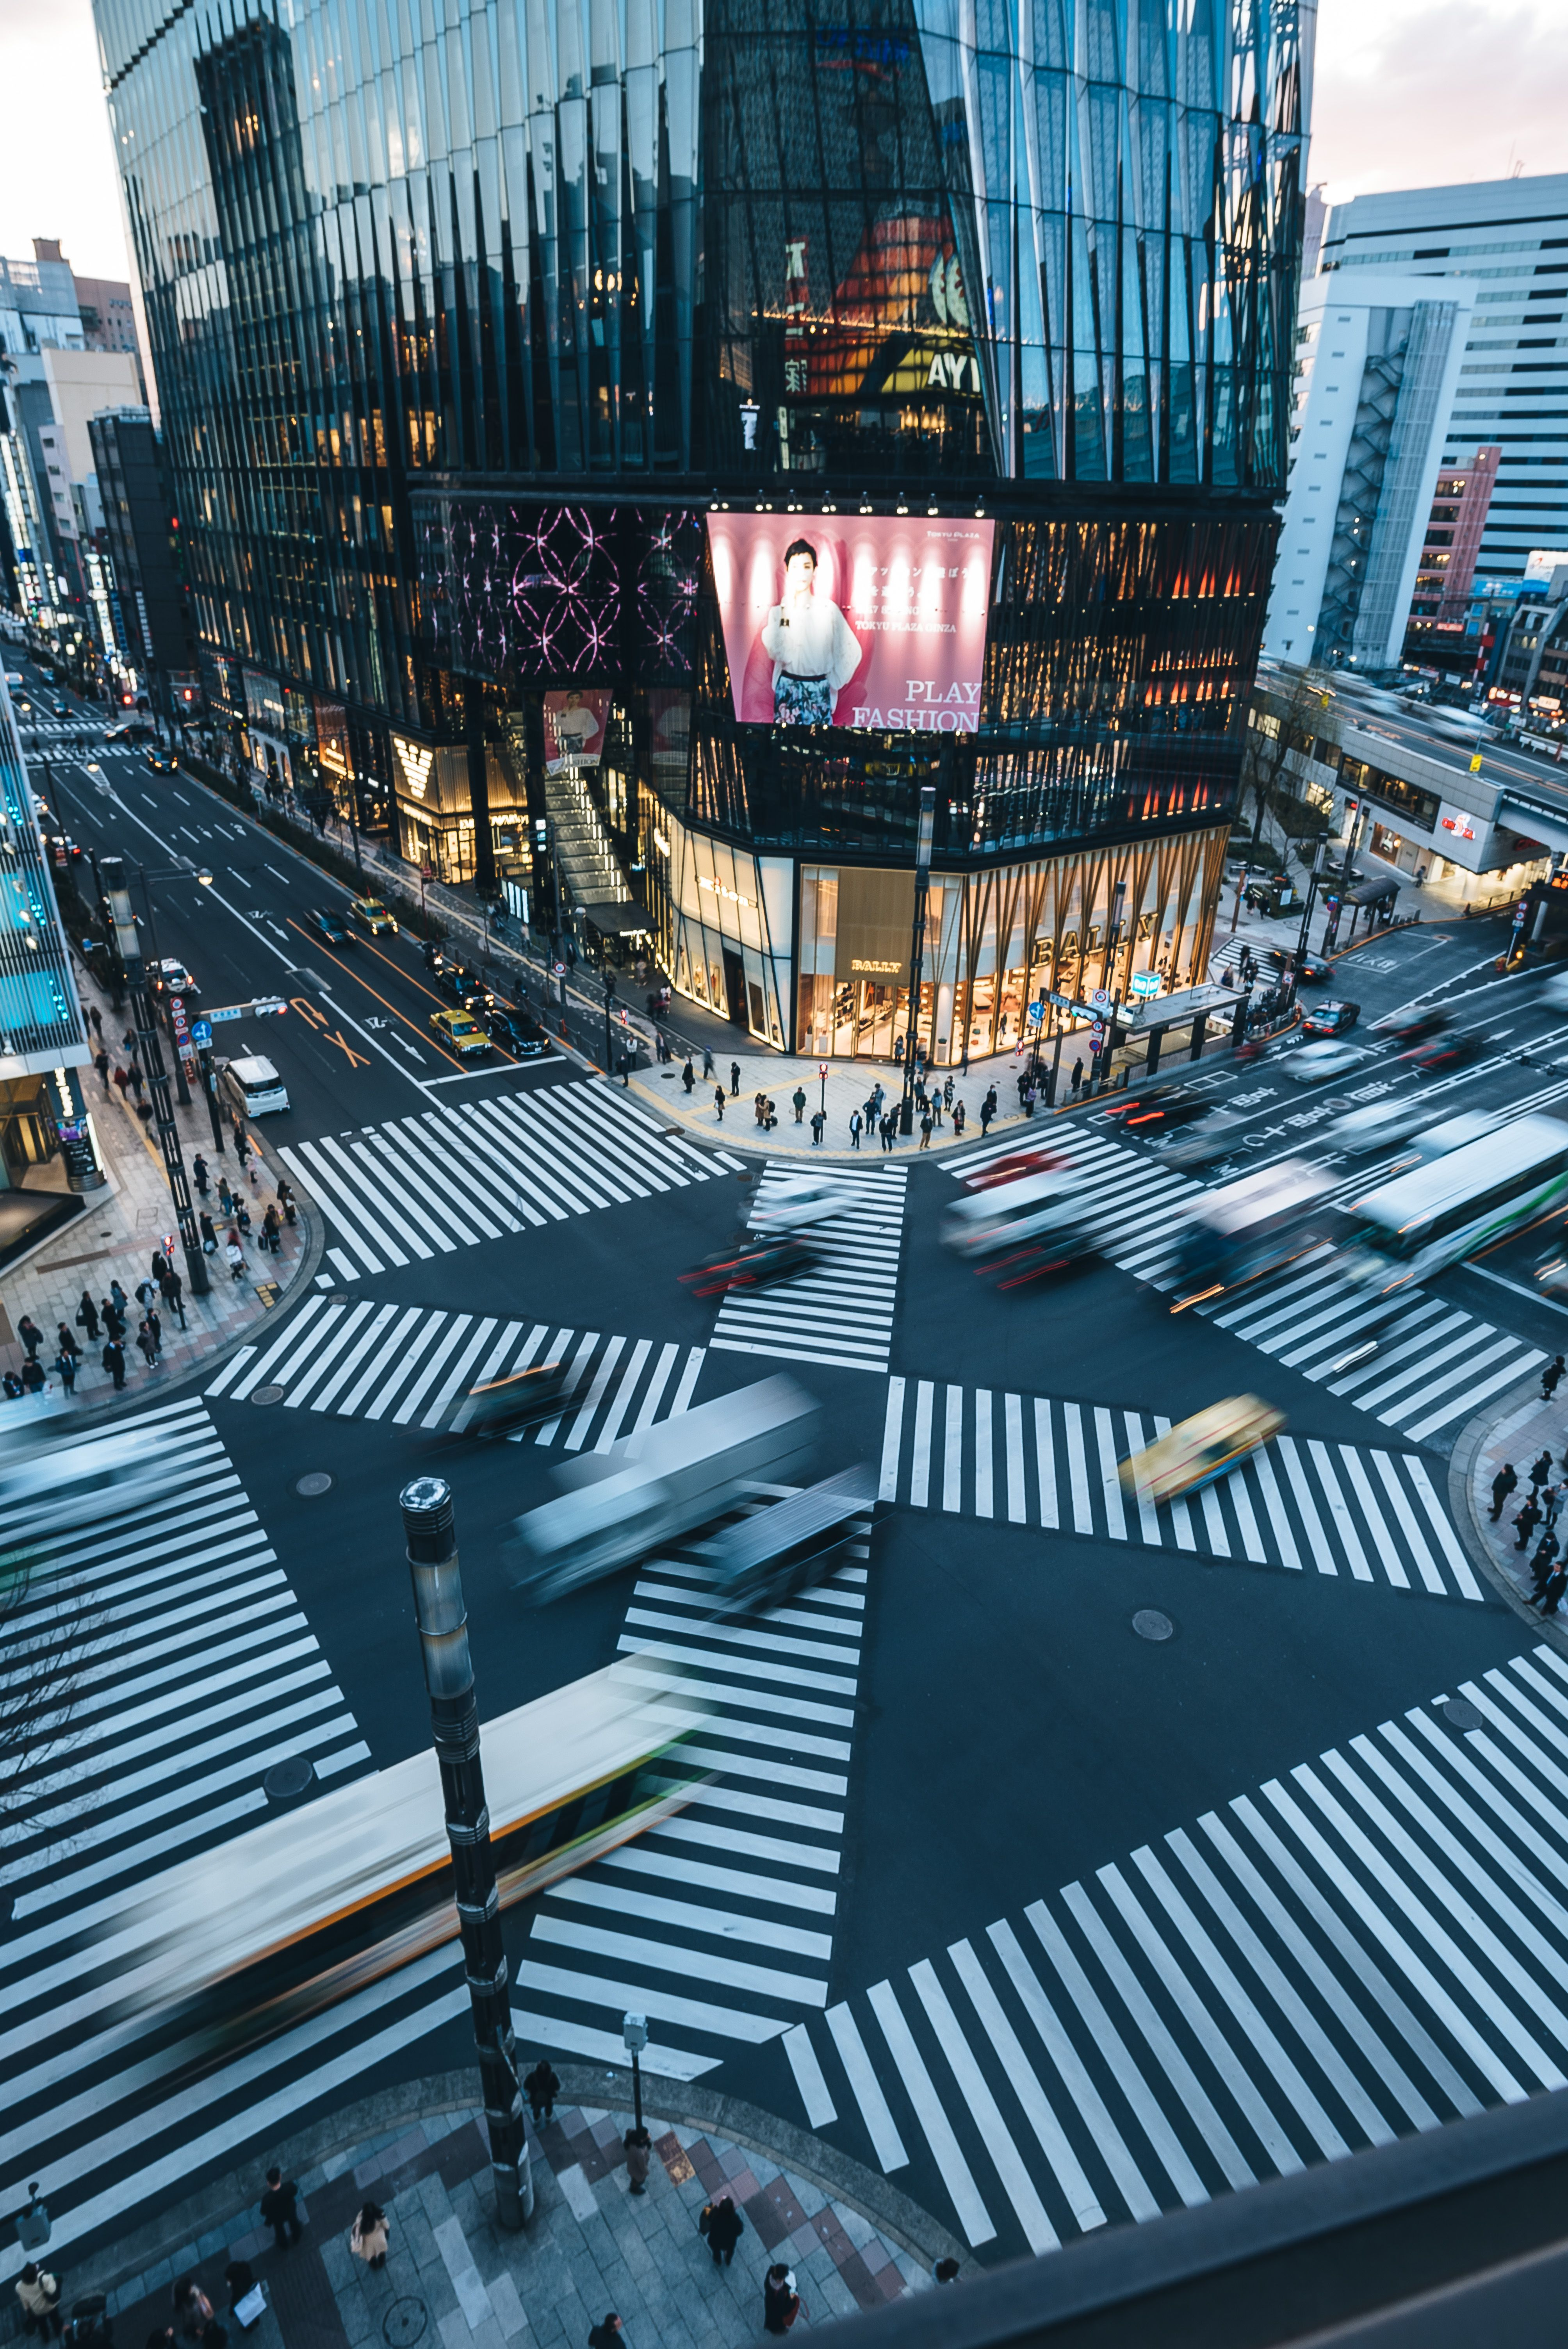 Ginza Crossing in Motion #Tokyo #Japan #Street #Urban #Photography ...